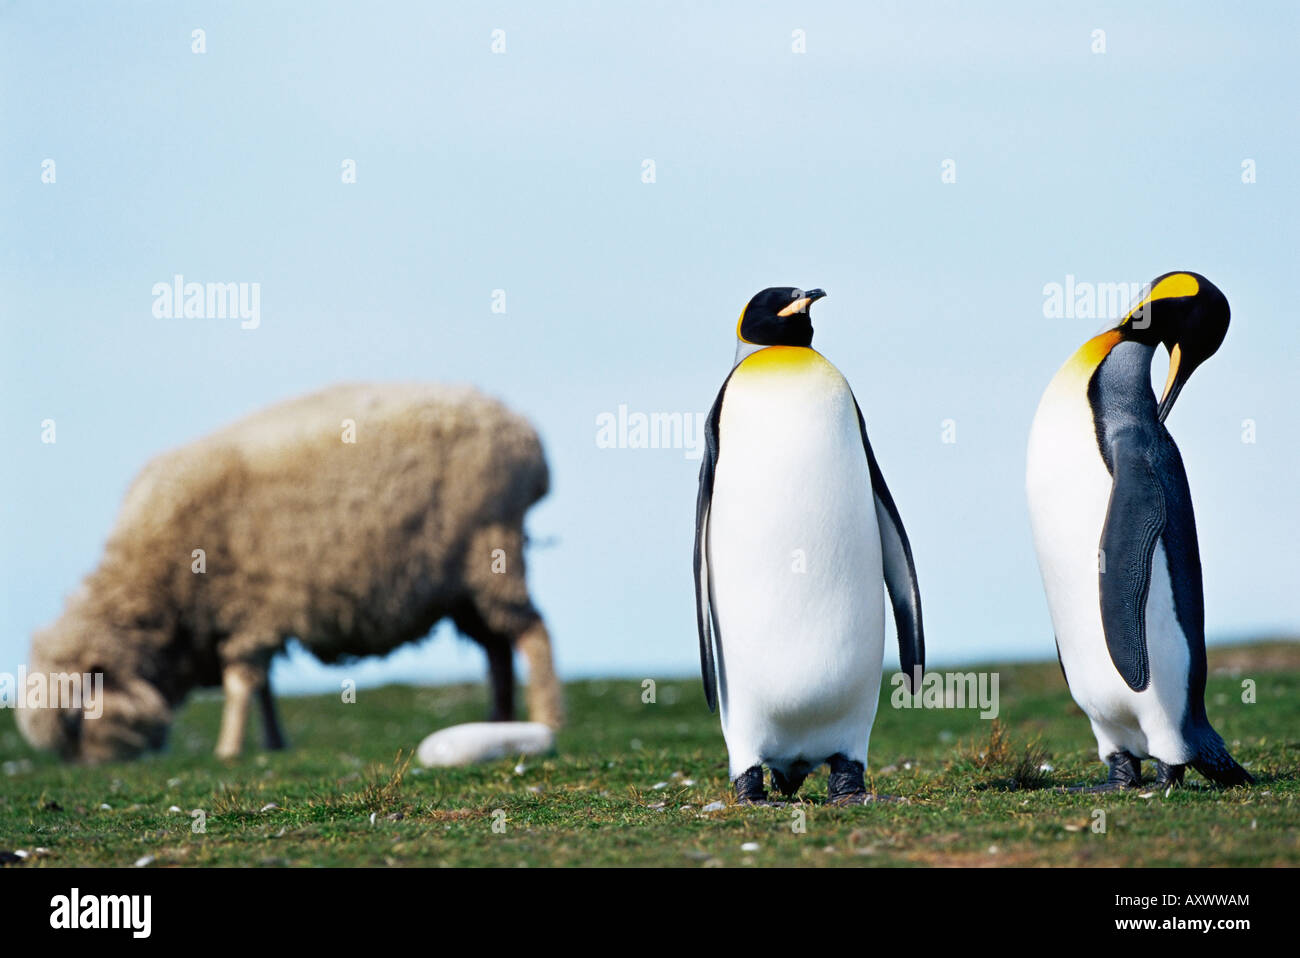 King penguins (Aptenodytes patagonicus) sharing their territory with a sheep, Volunteer Point, East Falkland, Falkland - Stock Image